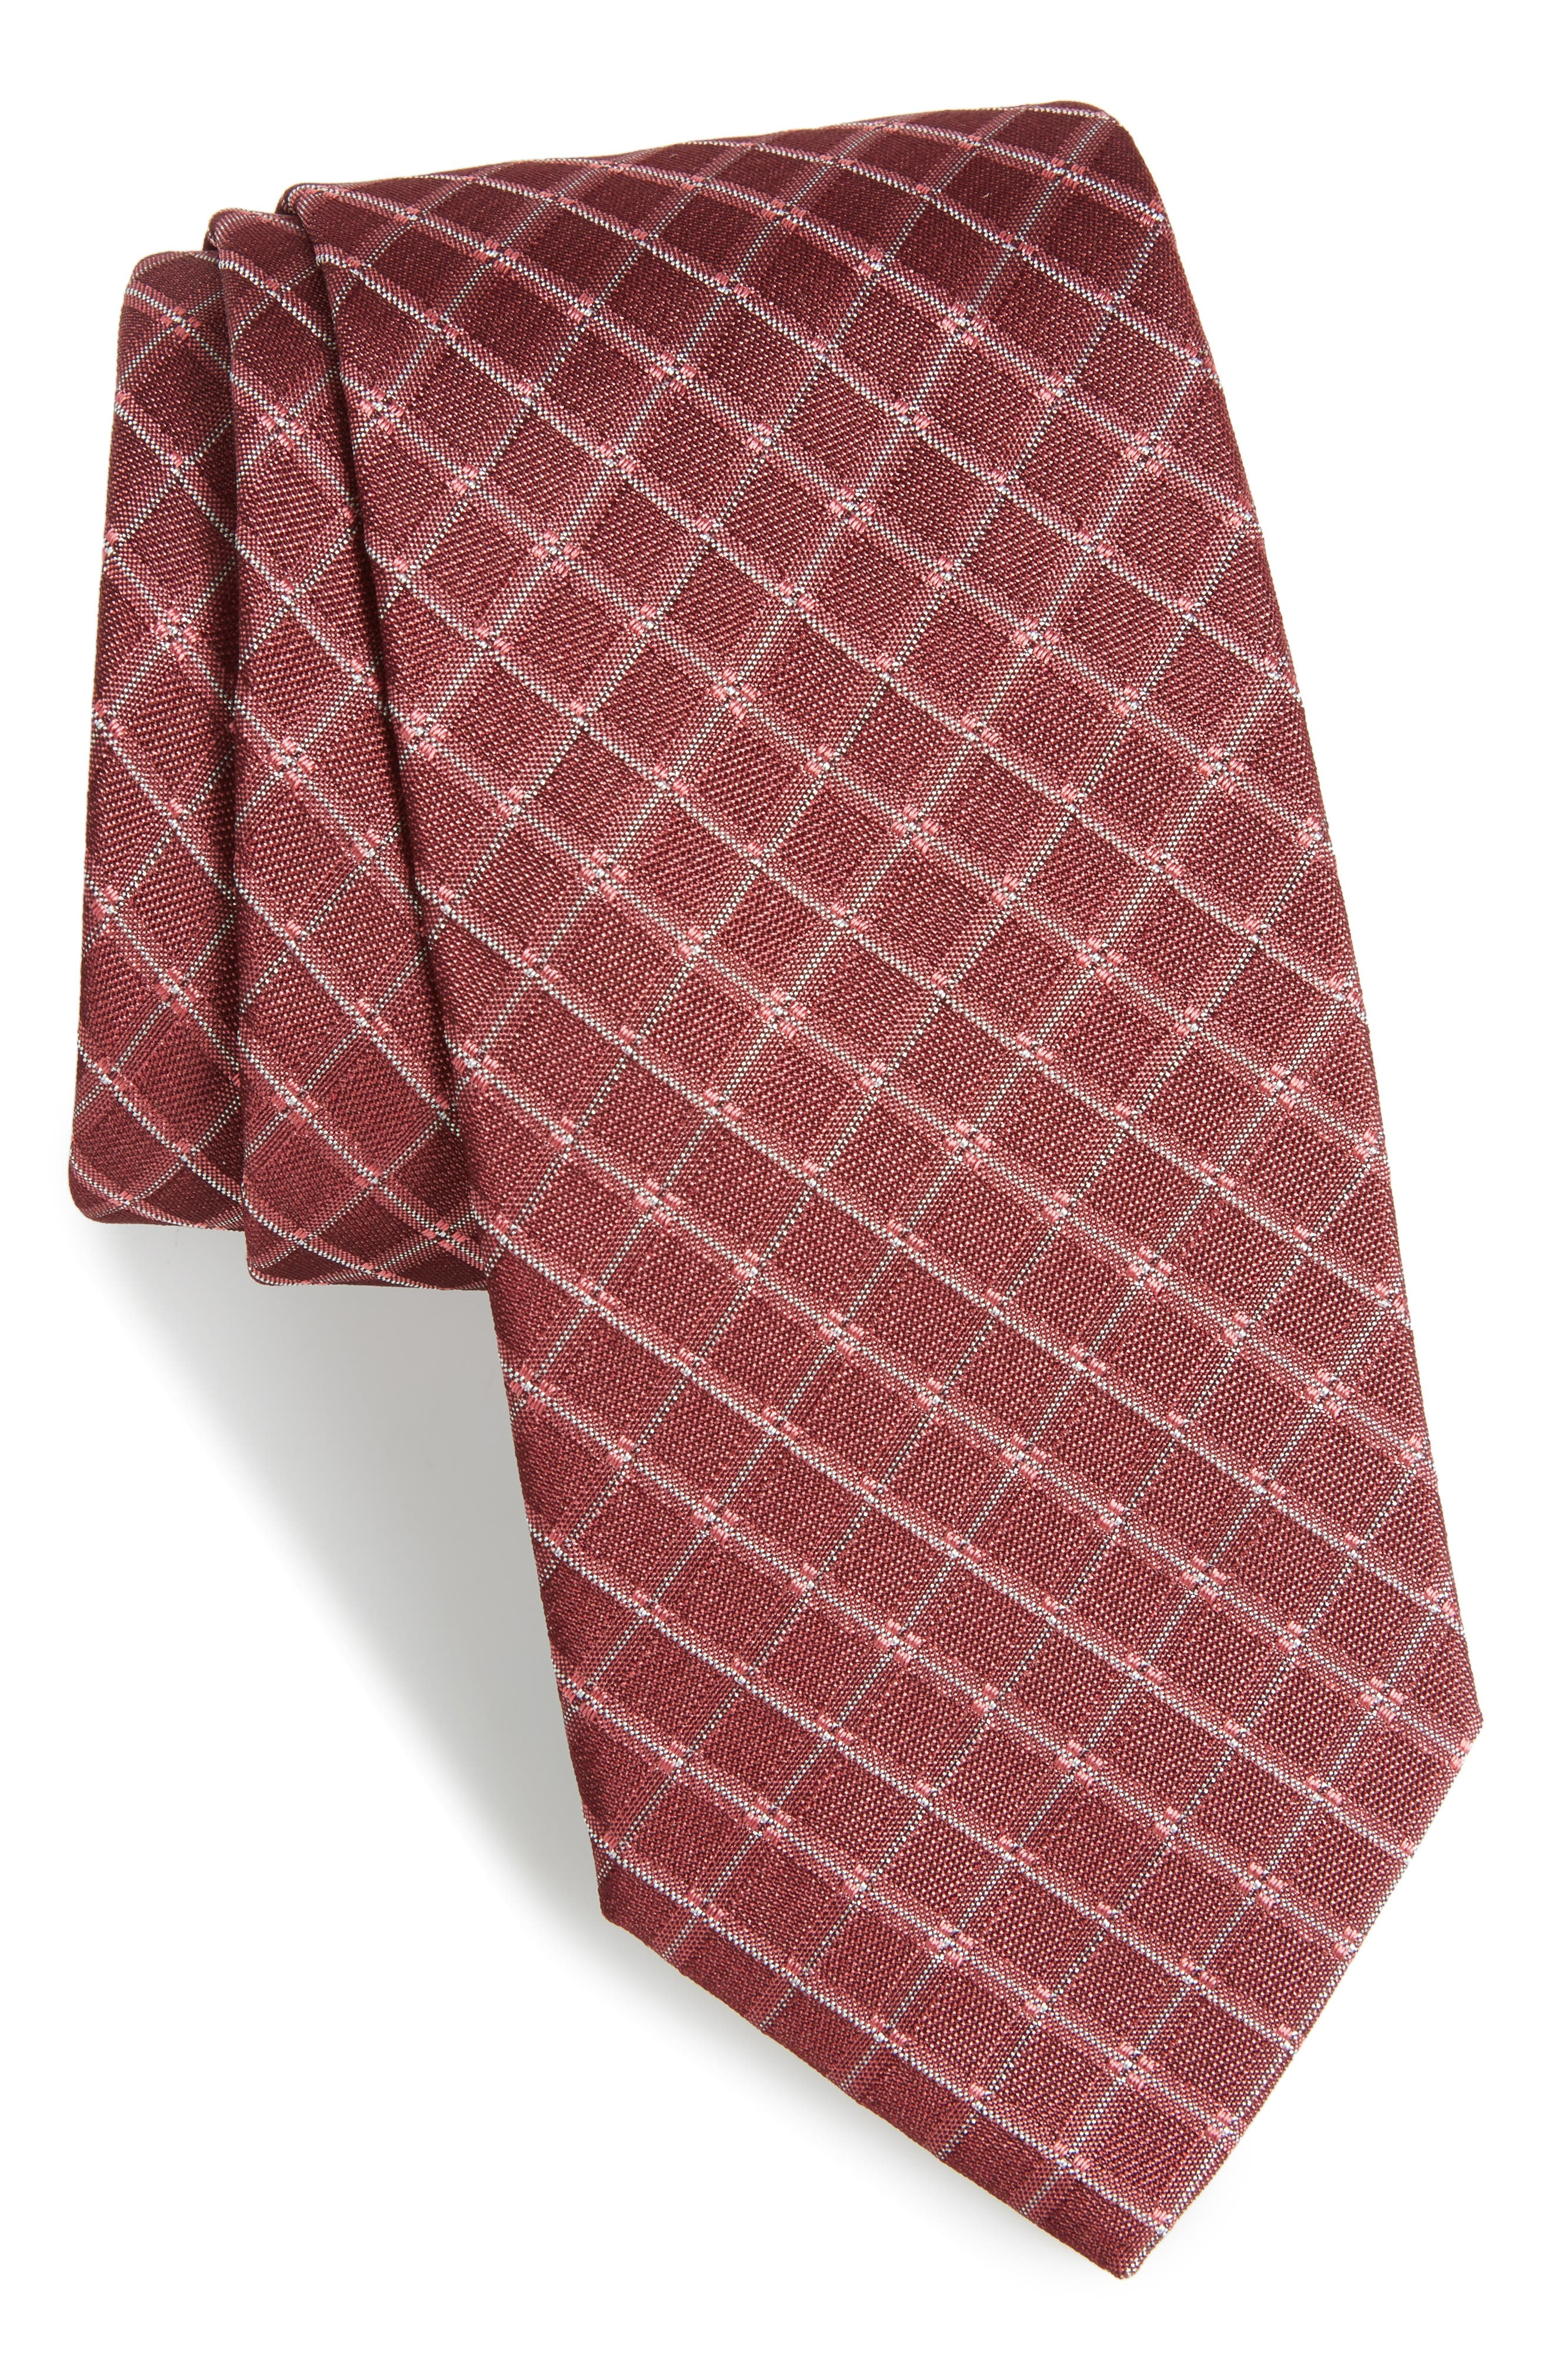 Alternate Image 1 Selected - BOSS Plaid Silk Skinny Tie